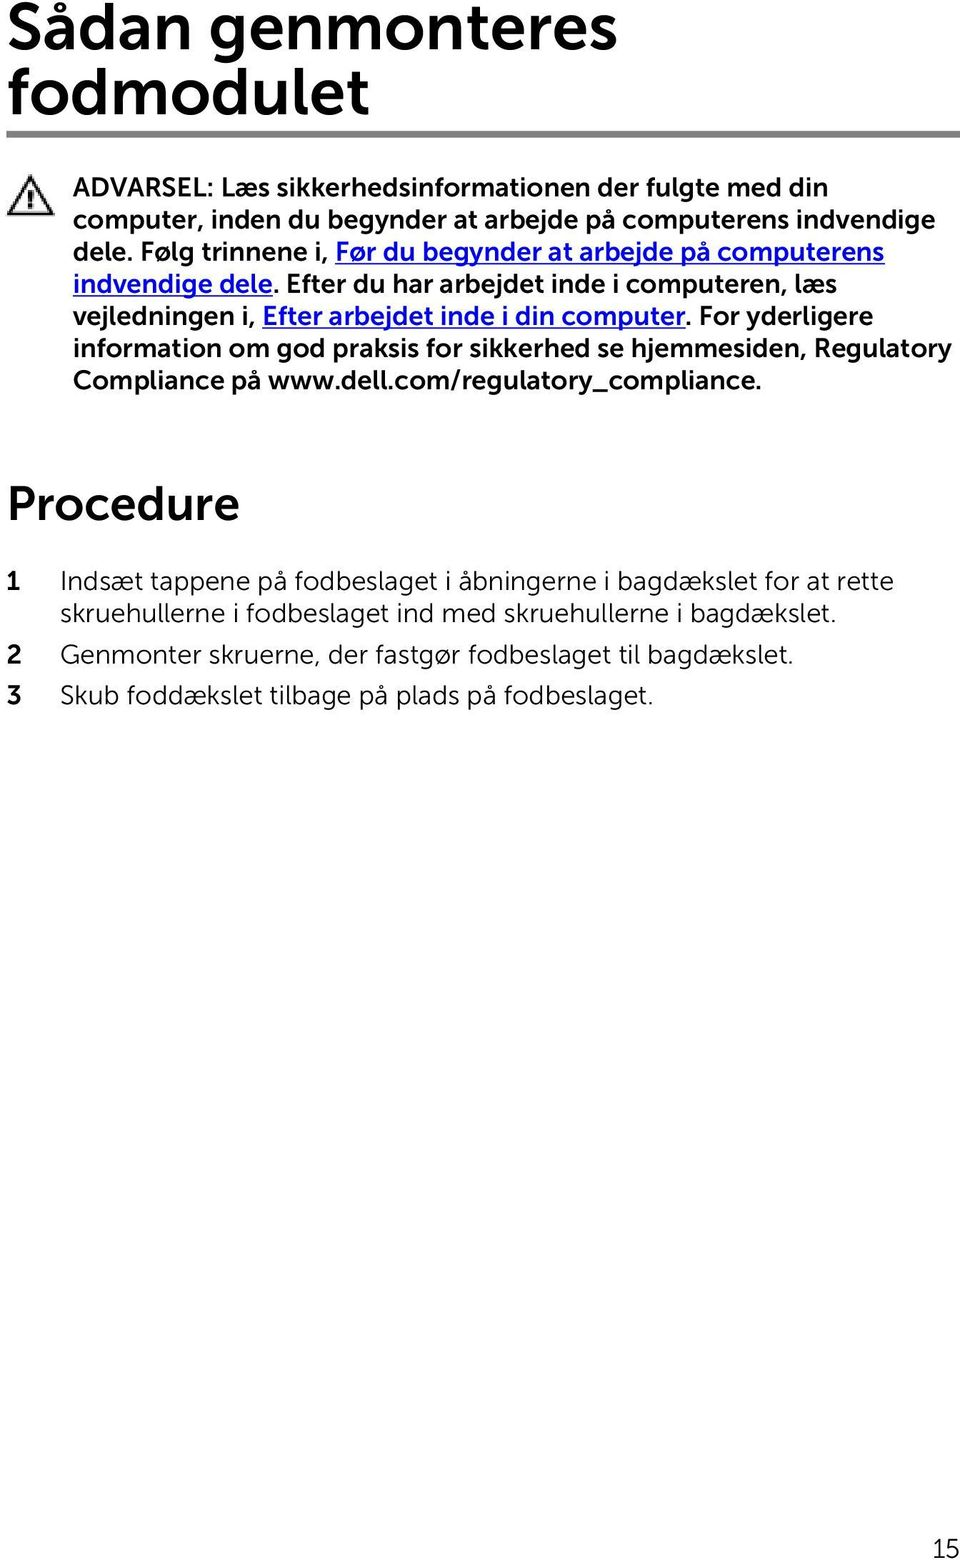 For yderligere information om god praksis for sikkerhed se hjemmesiden, Regulatory Compliance på www.dell.com/regulatory_compliance.